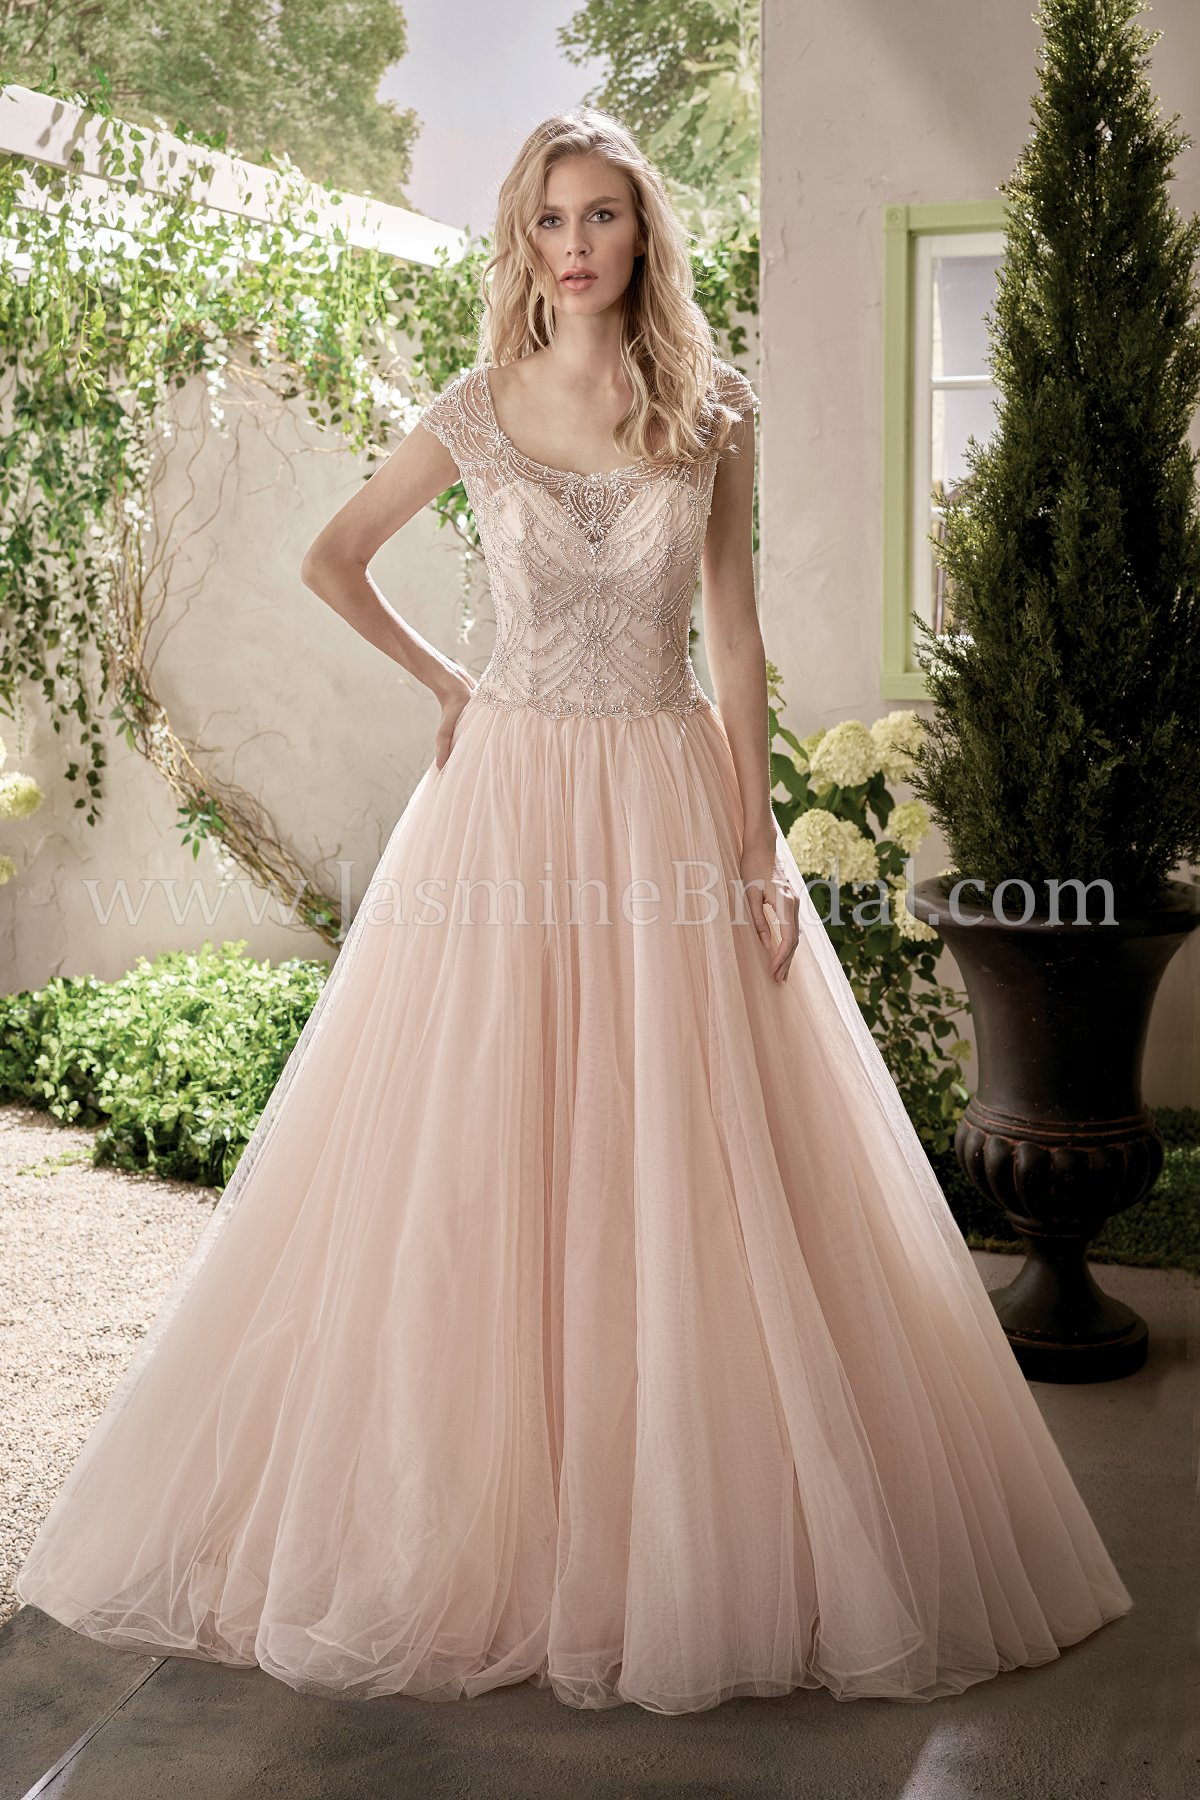 F191014 Scoop Neckline Tulle Ball Gown Wedding Dress with Beading